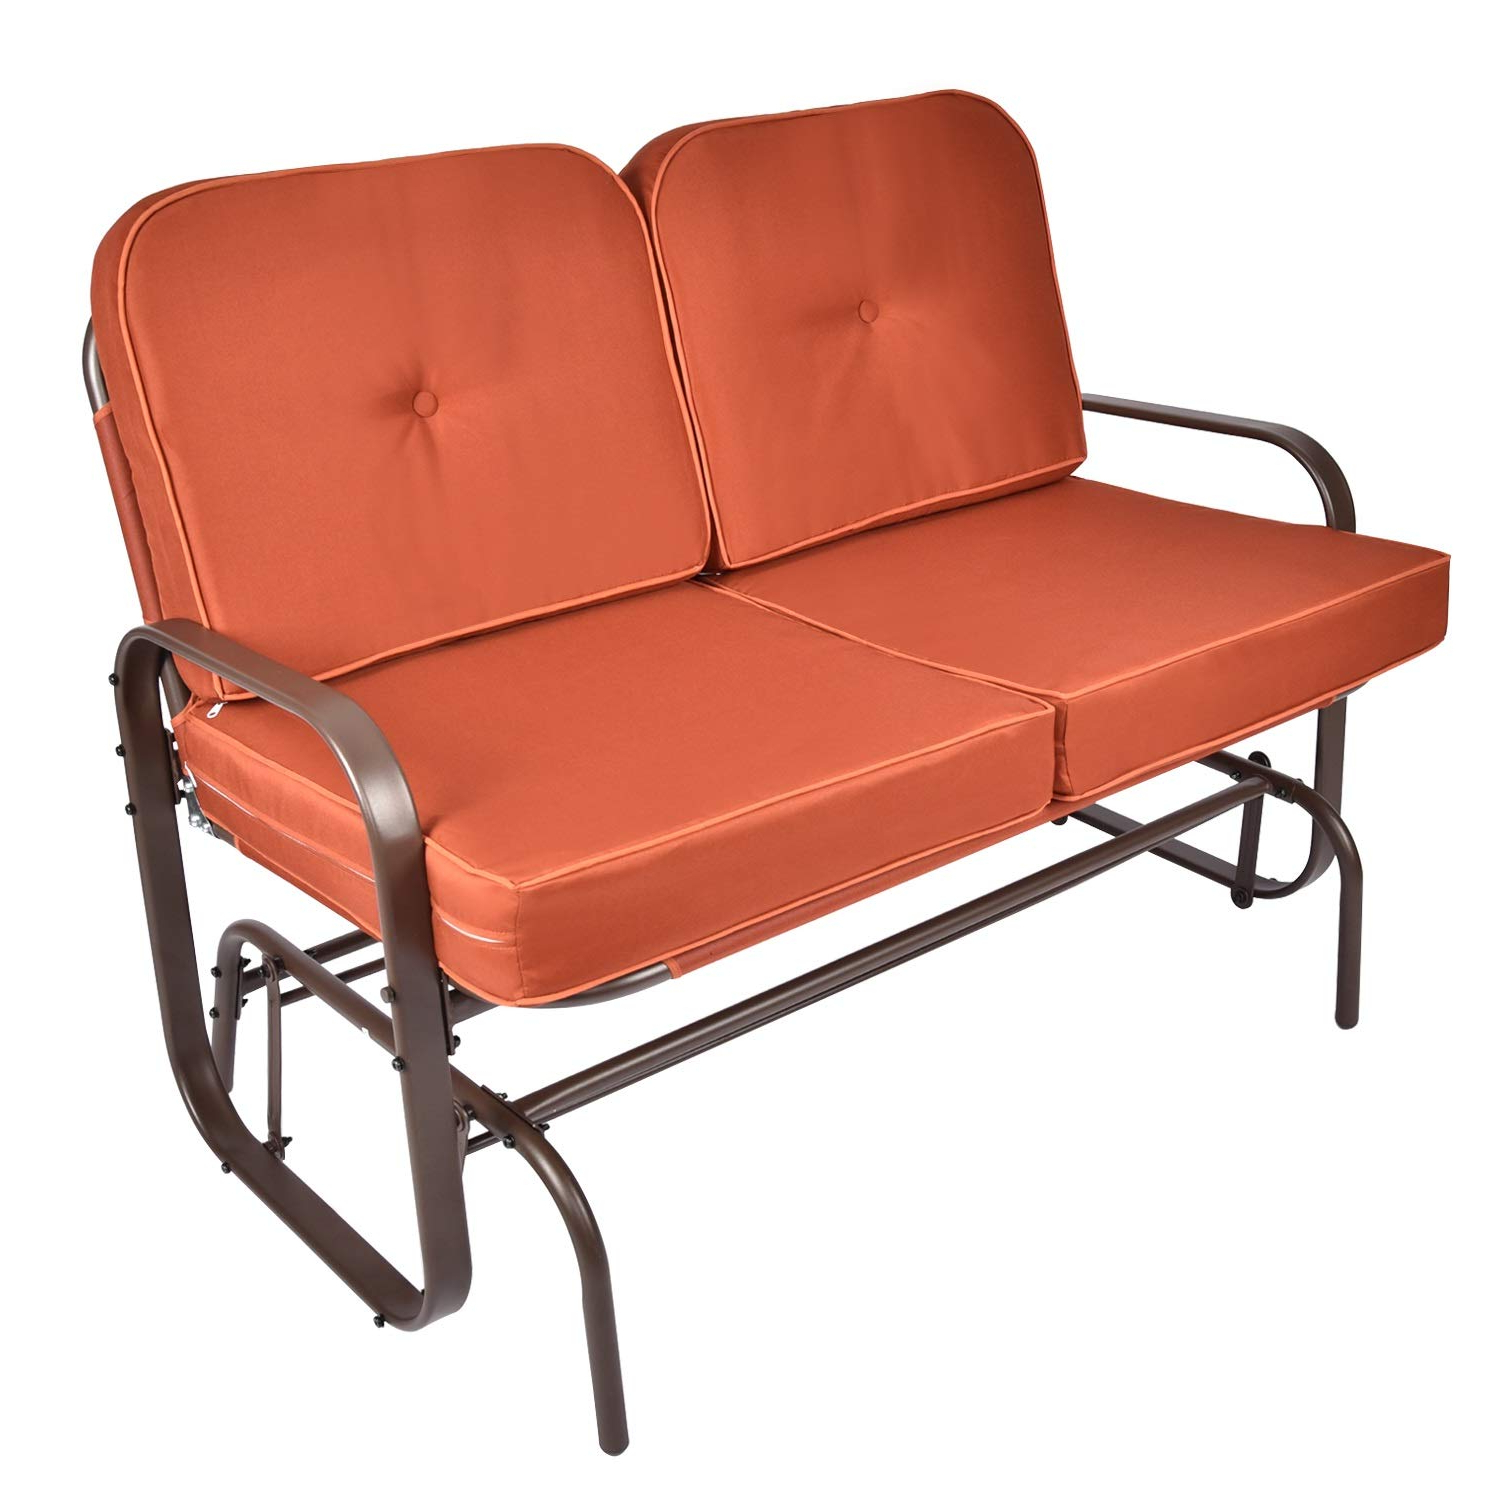 Popular Loveseat Glider Benches With Cushions In Elecwish Outdoor Swing Glider Rocking Chair Patio Bench For 2 Person, Garden Loveseat Seating Patio W/uv Resistant Cushions (orange) (View 6 of 30)